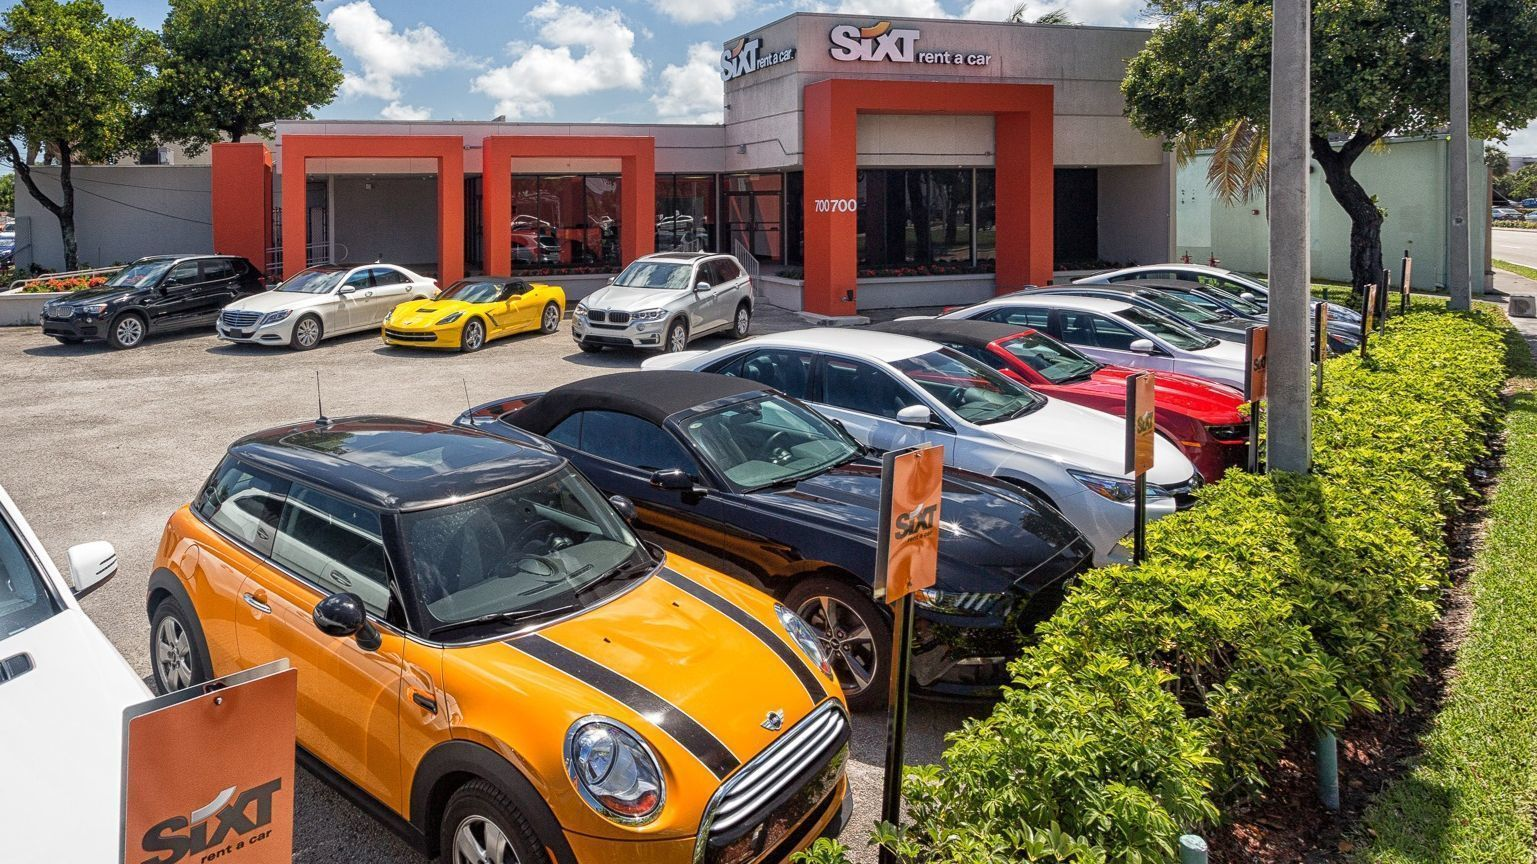 Sixt Car Rental Miami: Sixt Car Rental To Create 300 Jobs In New Fort Lauderdale